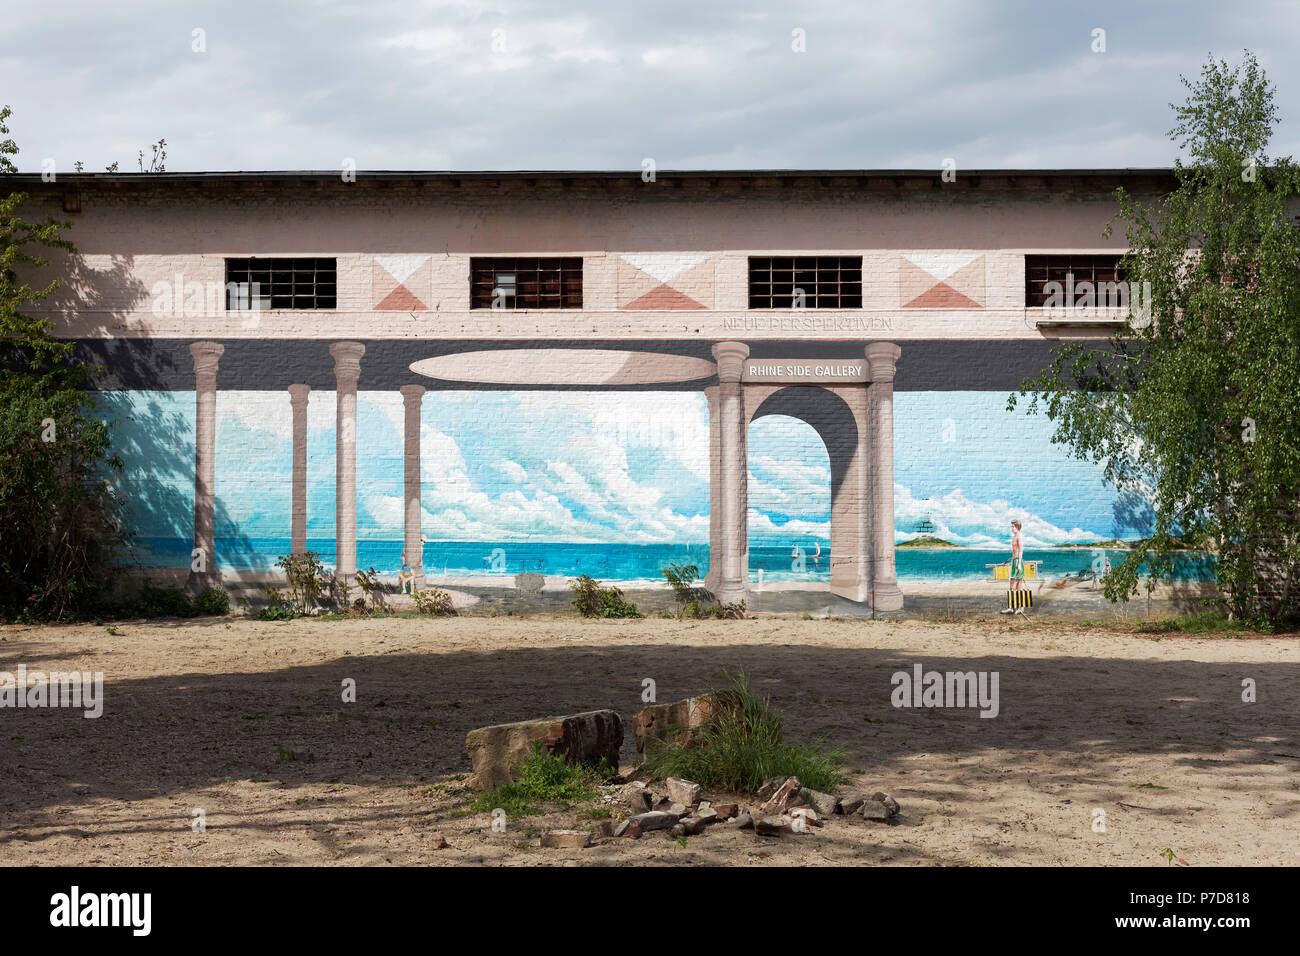 View of the sea, Trompe L'oeil wall painting by Gregor Wosik and Danila Shumelev, Streetart, Rhine Side Gallery Uerdingen - Stock Image